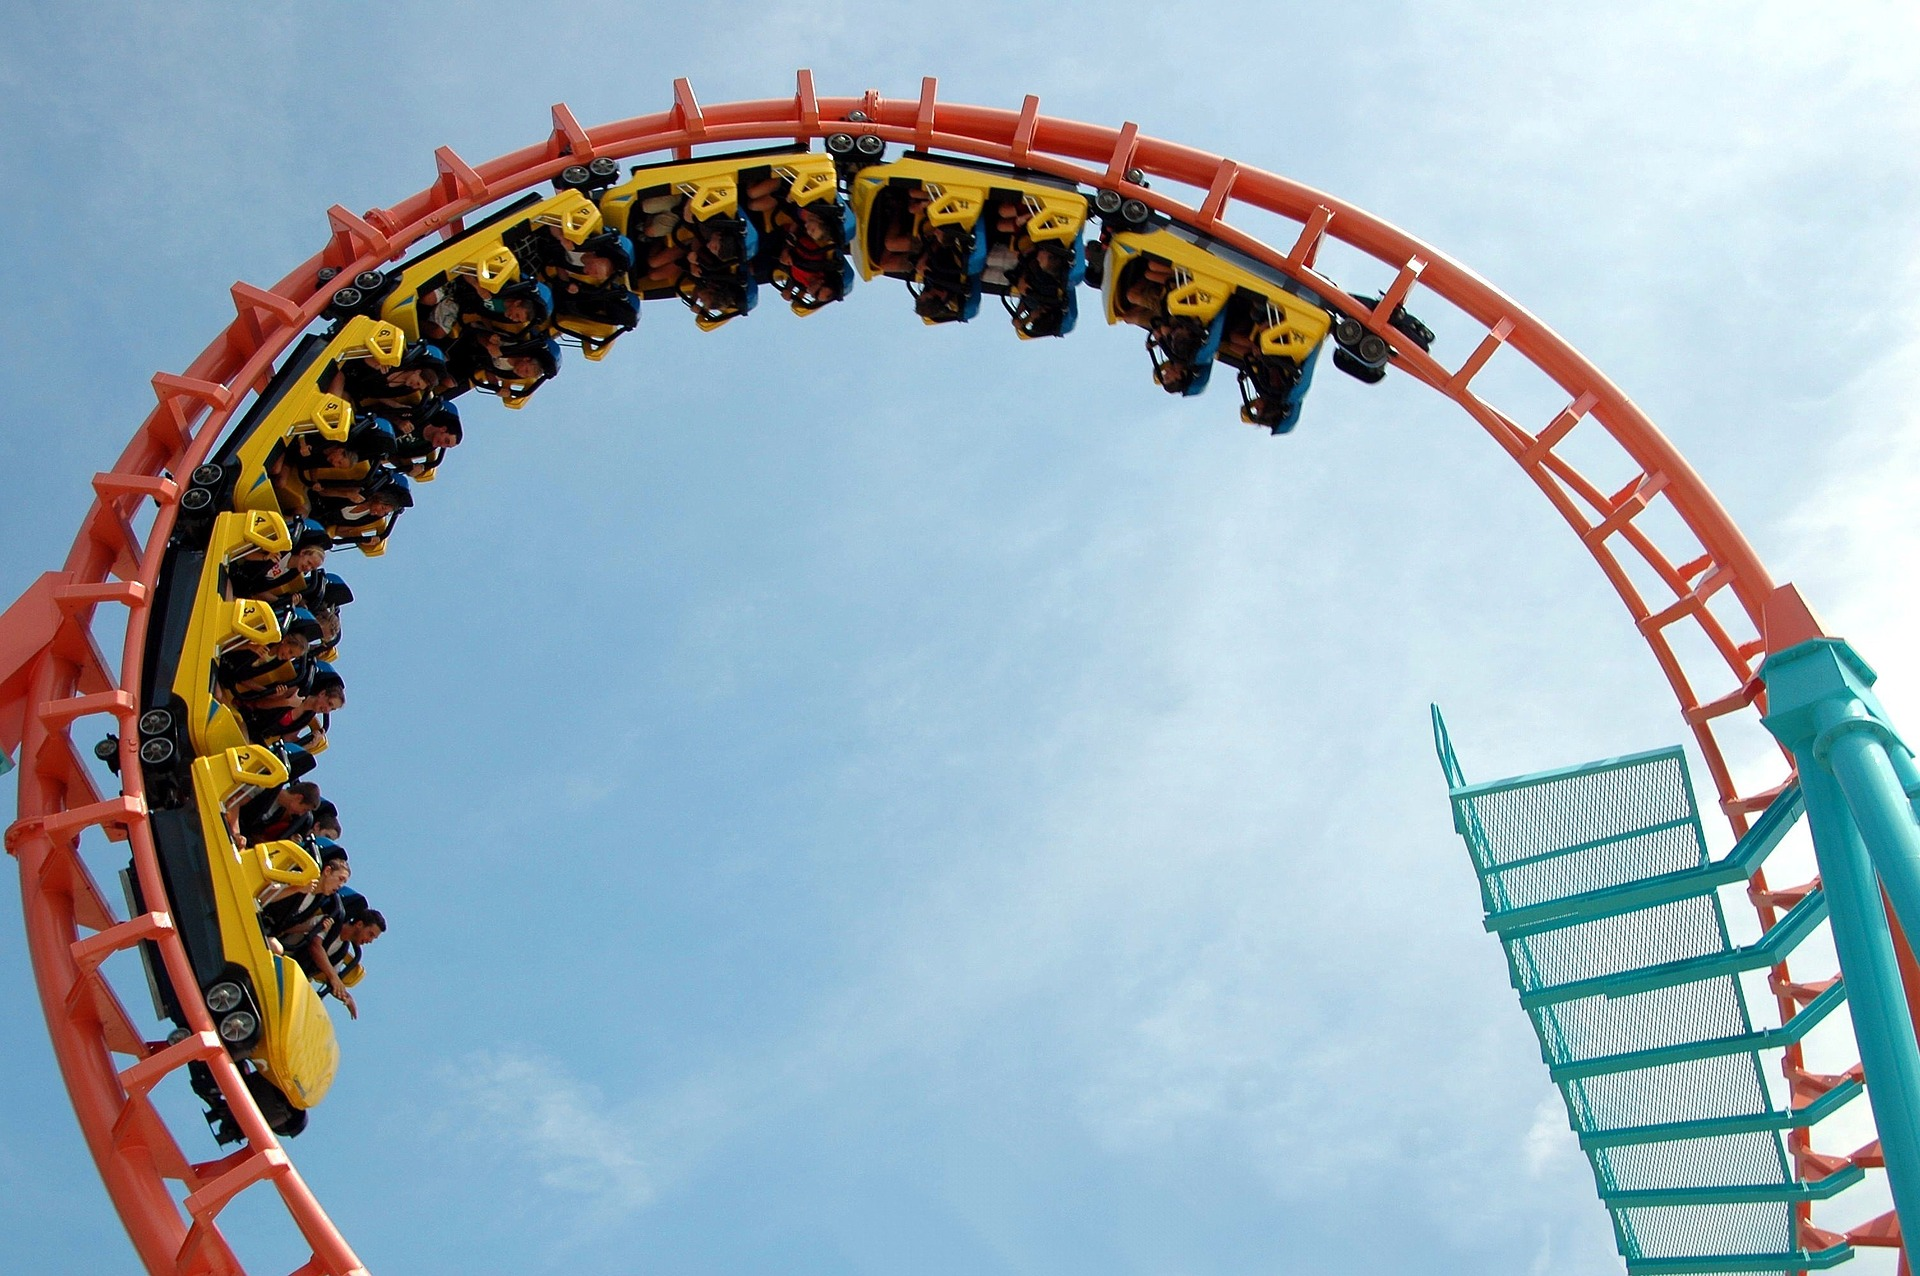 The starting school roller coaster